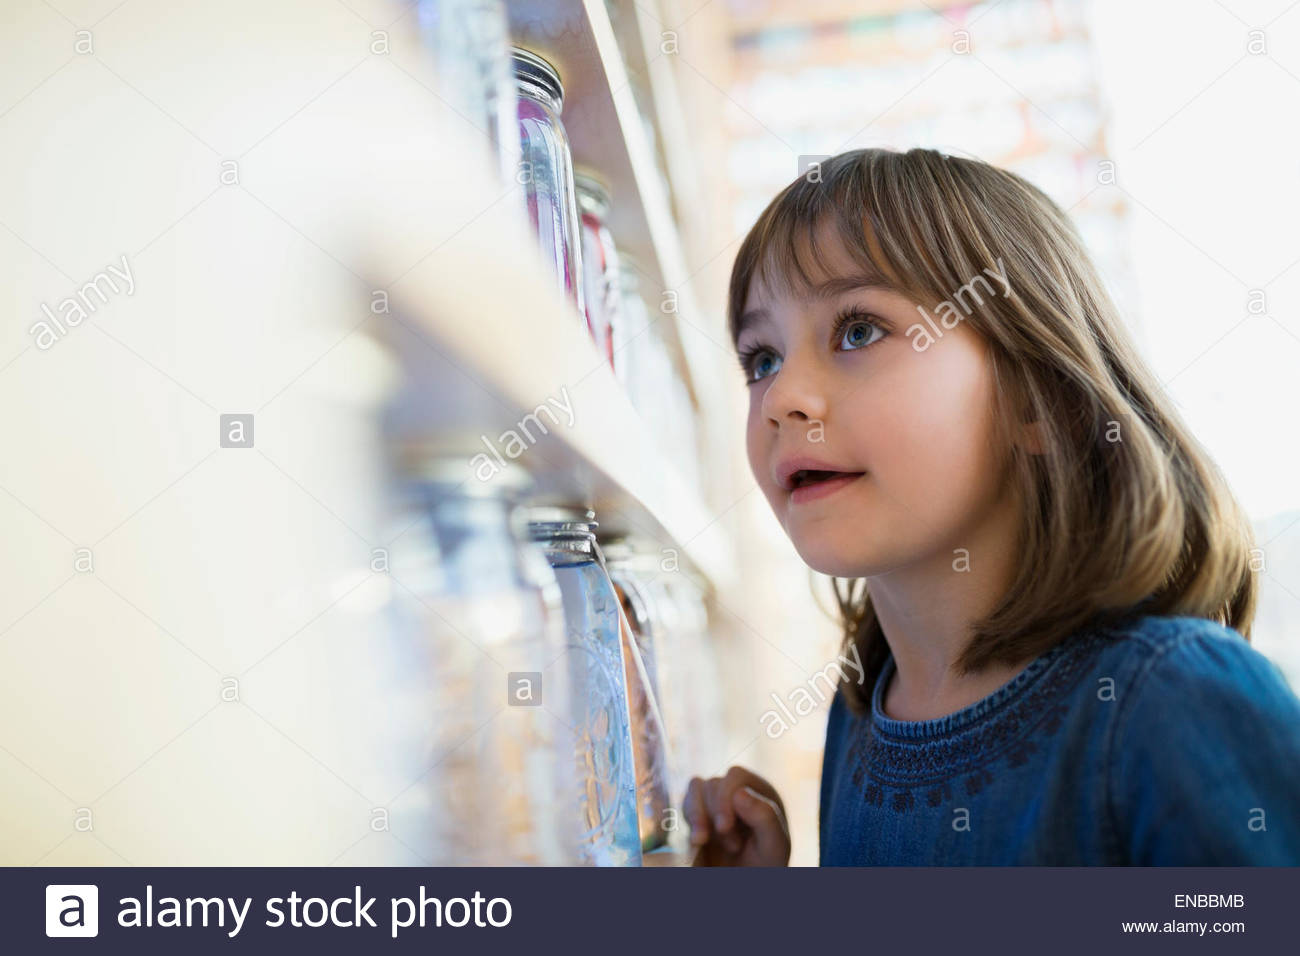 Curious girl examining jars in science center - Stock Image